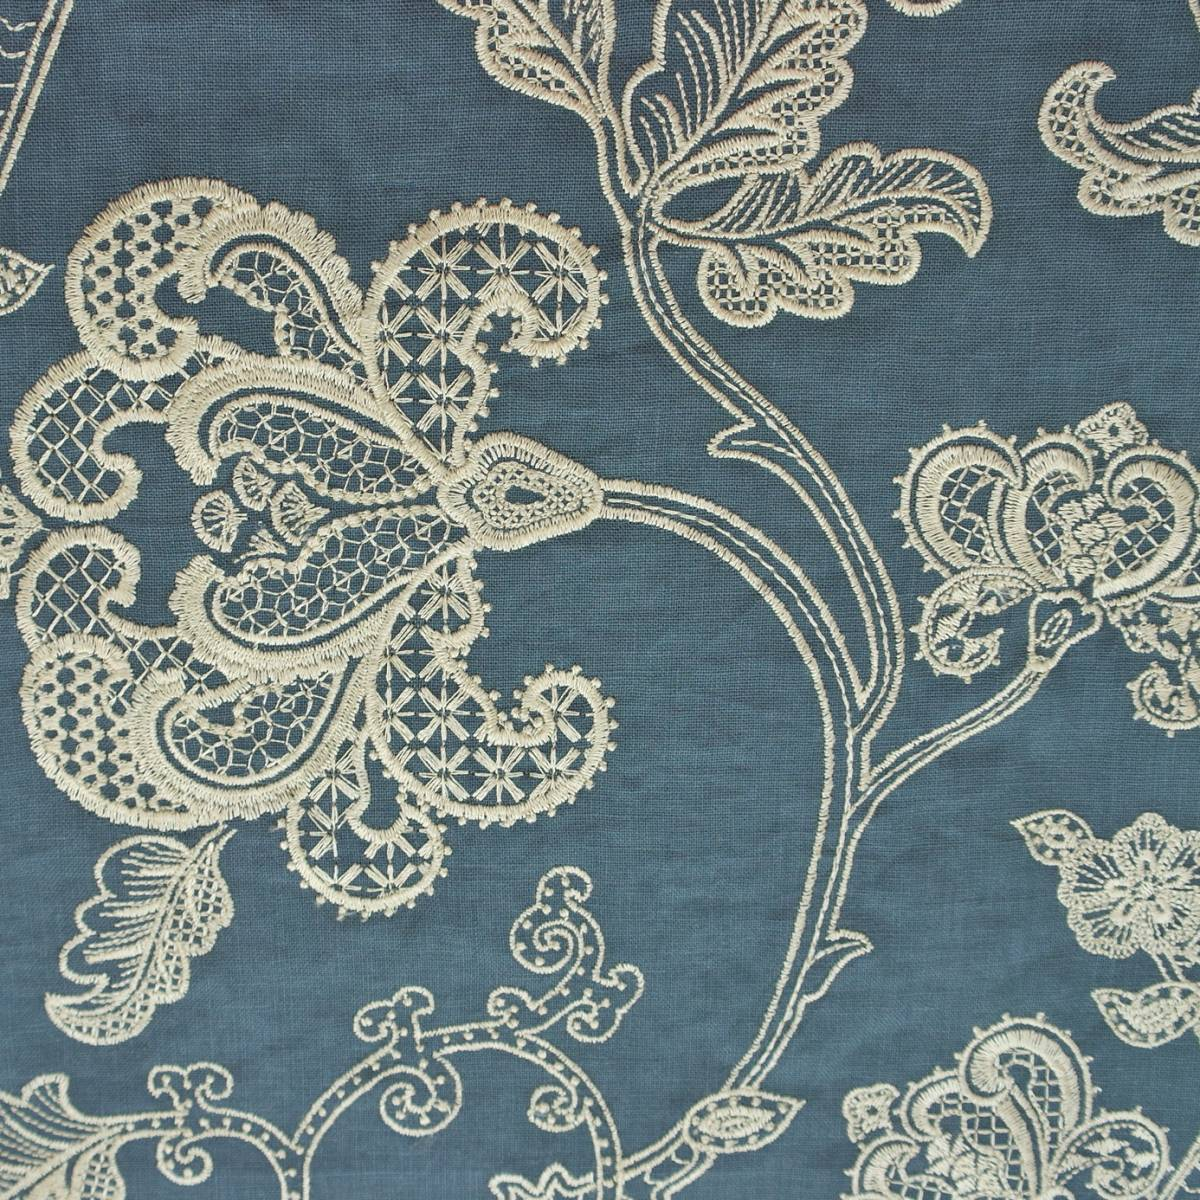 Lace Tree Fabric Blue F4110 04 Colefax Amp Fowler